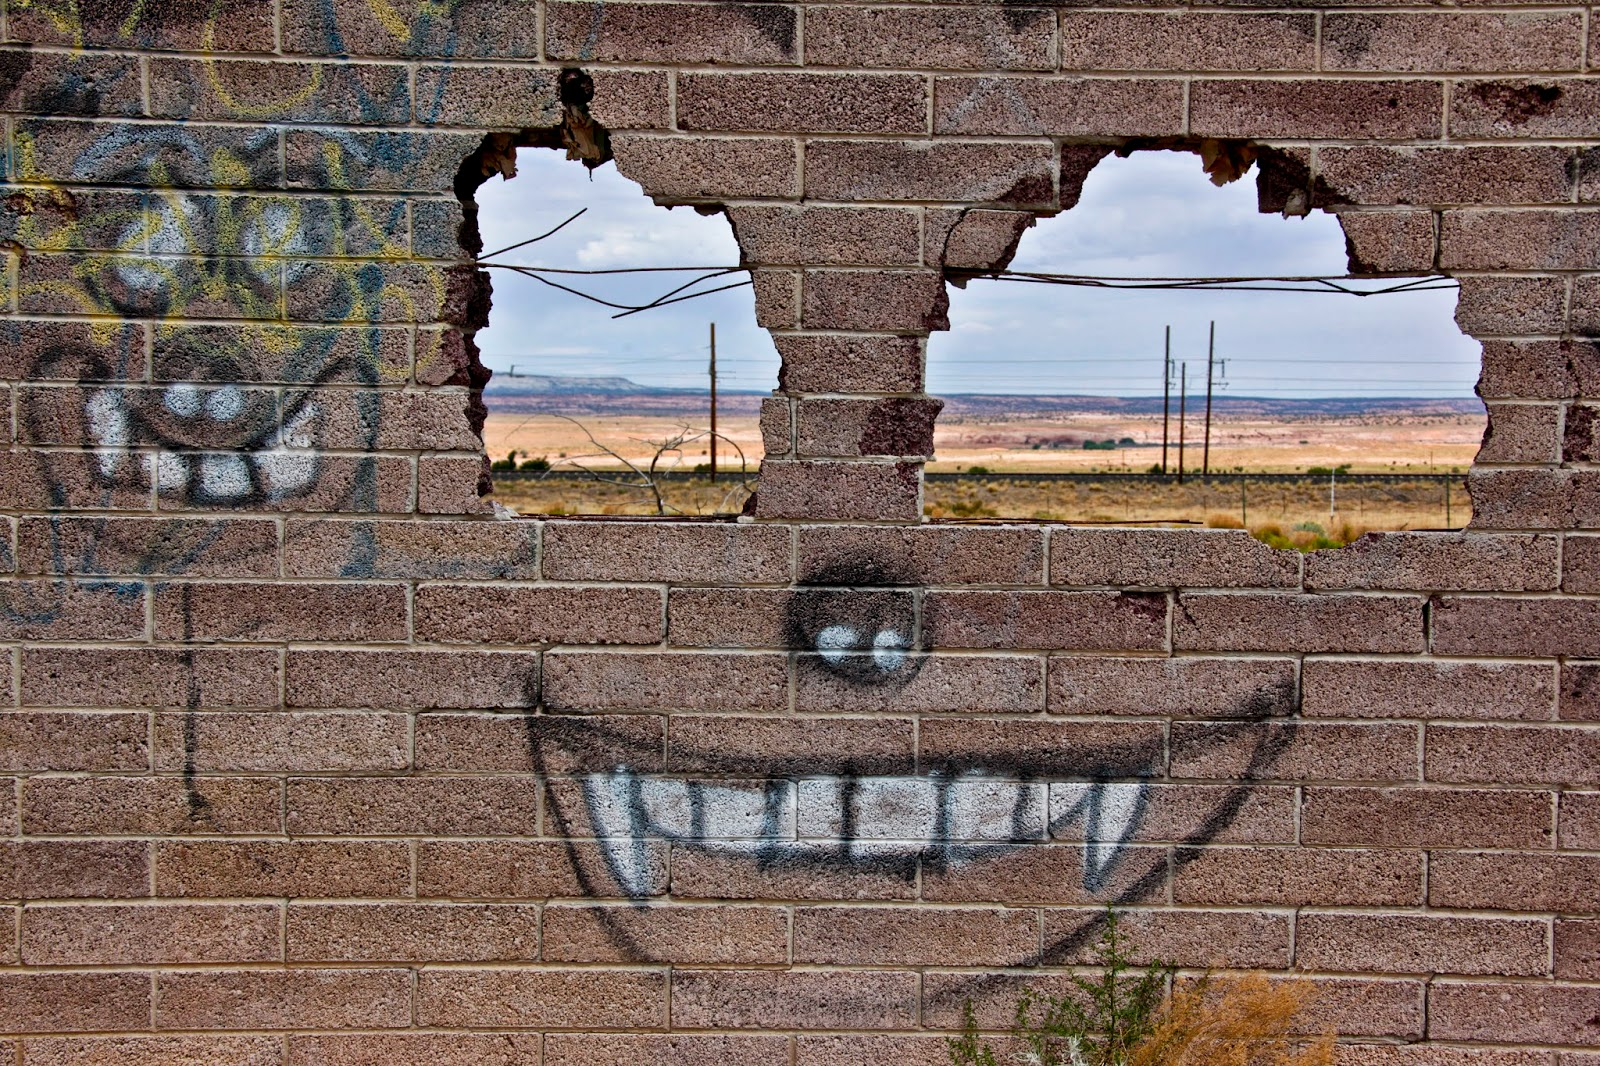 A graffiti face on one of the last standing walls of a building somewhere in Navajo Nation in Arizona.